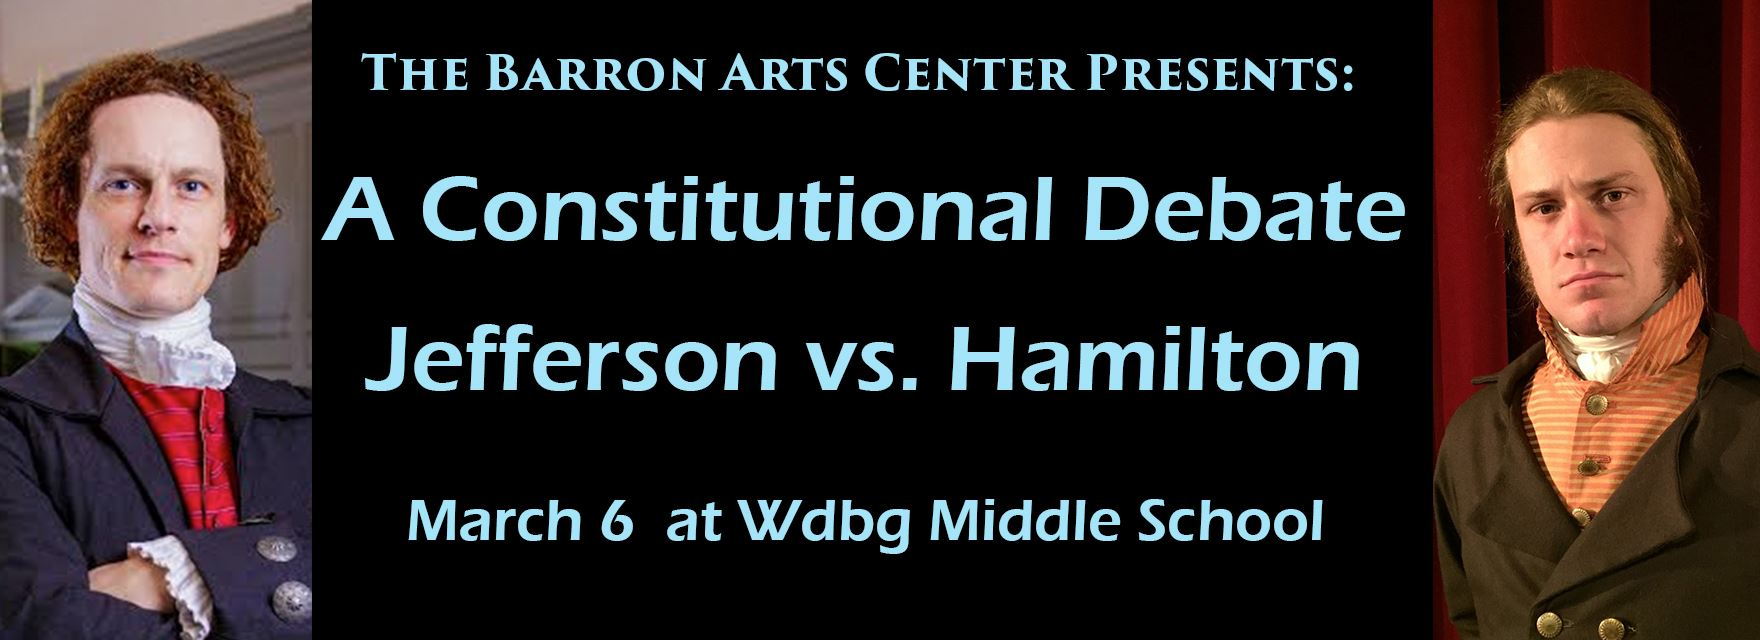 A Constitutional Debate: Jefferson vs. Hamilton